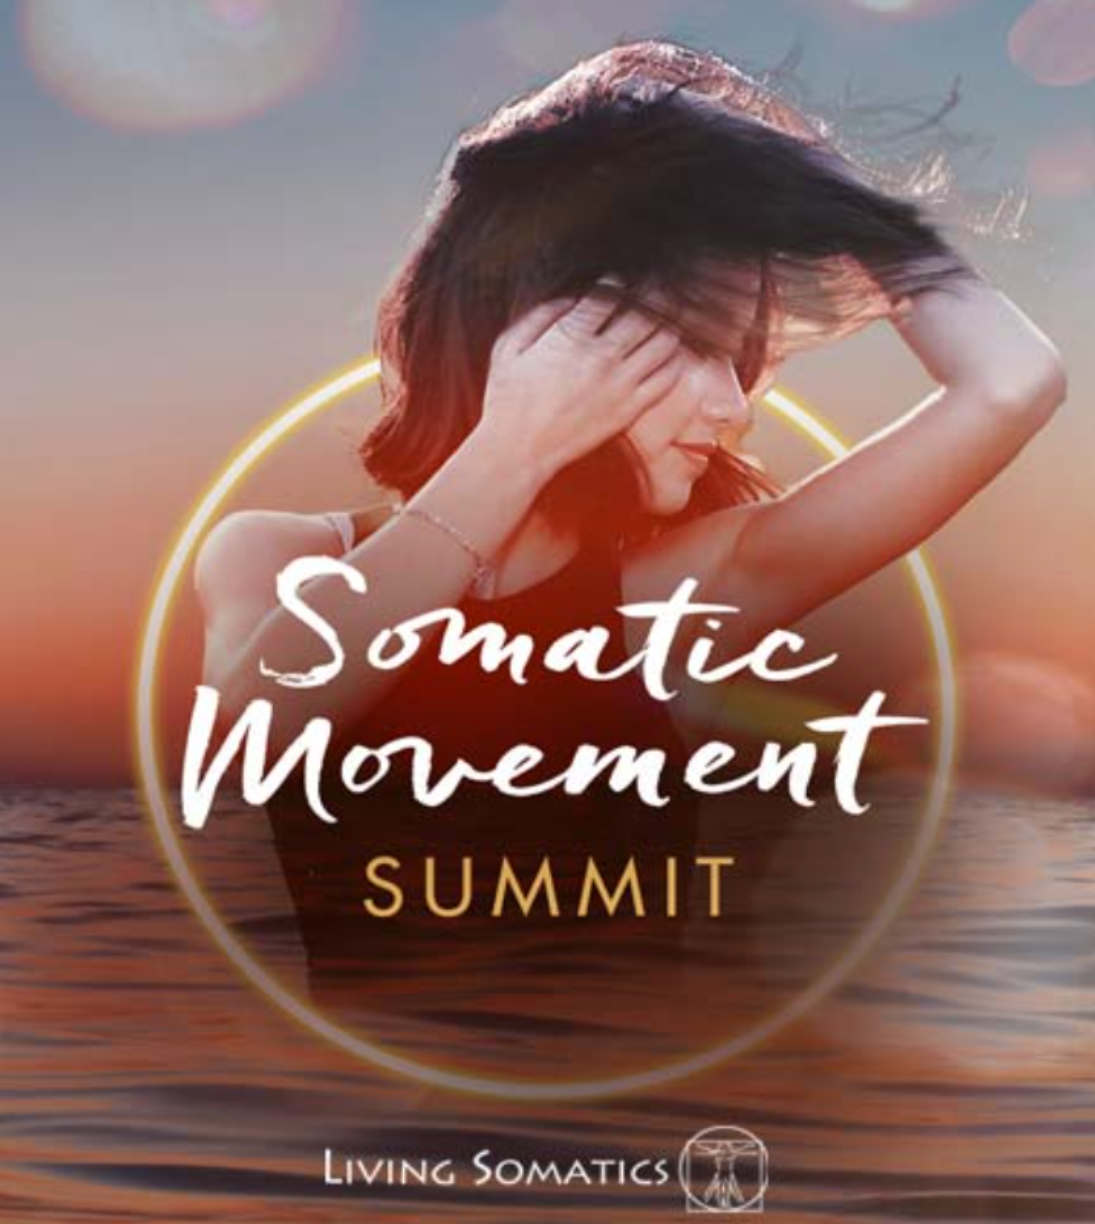 Join Somatic Movement Summit & Discover lifelong practices for vitality, fluidity & healing